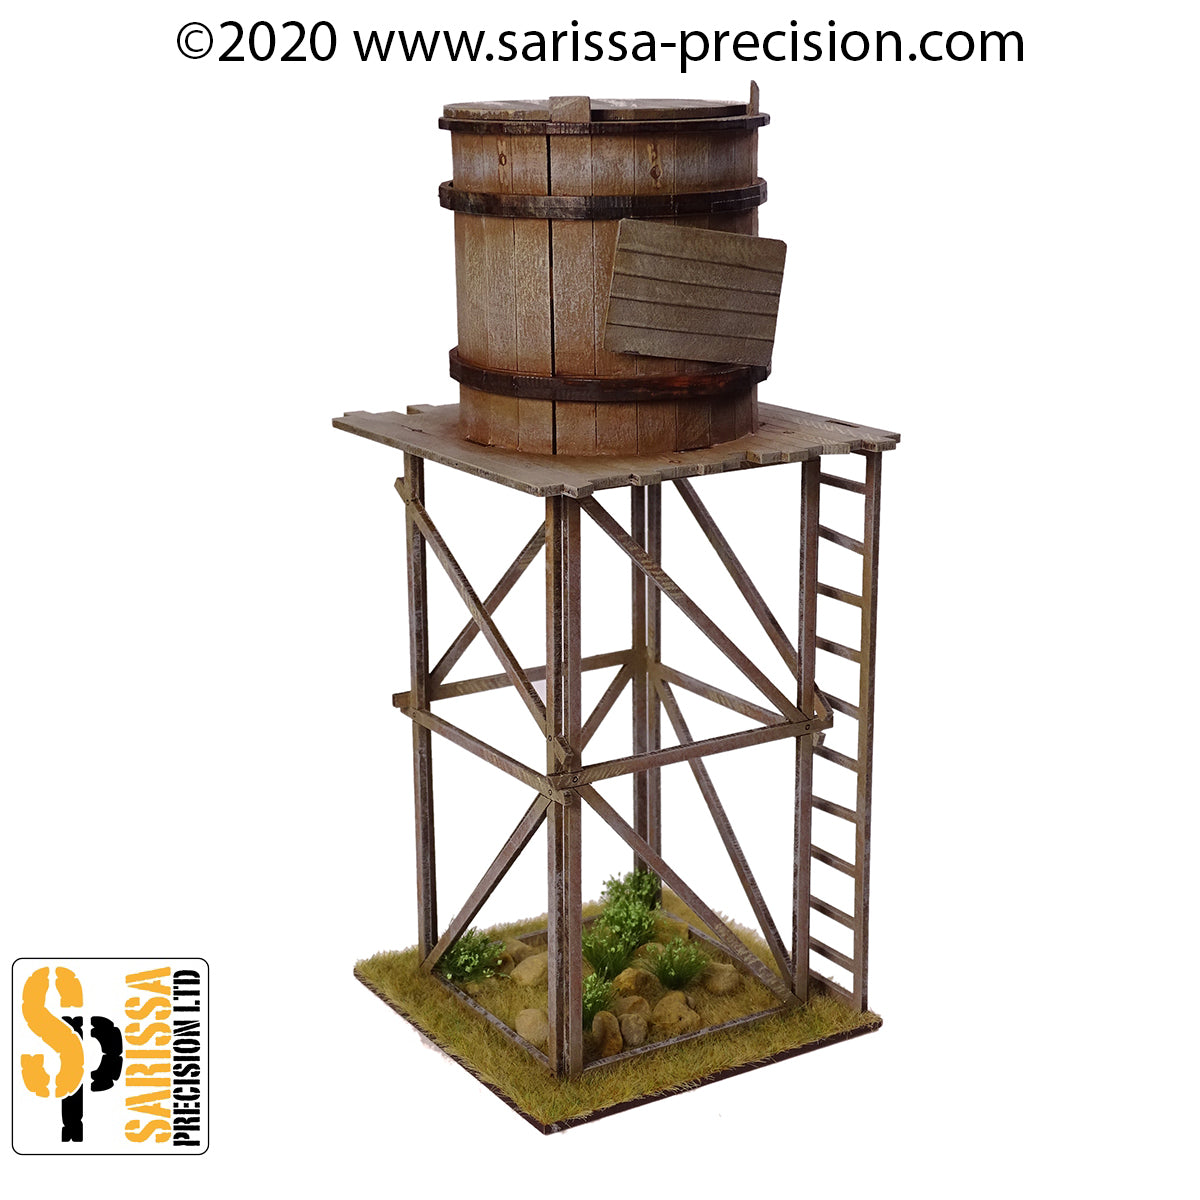 Water Tower (28mm)